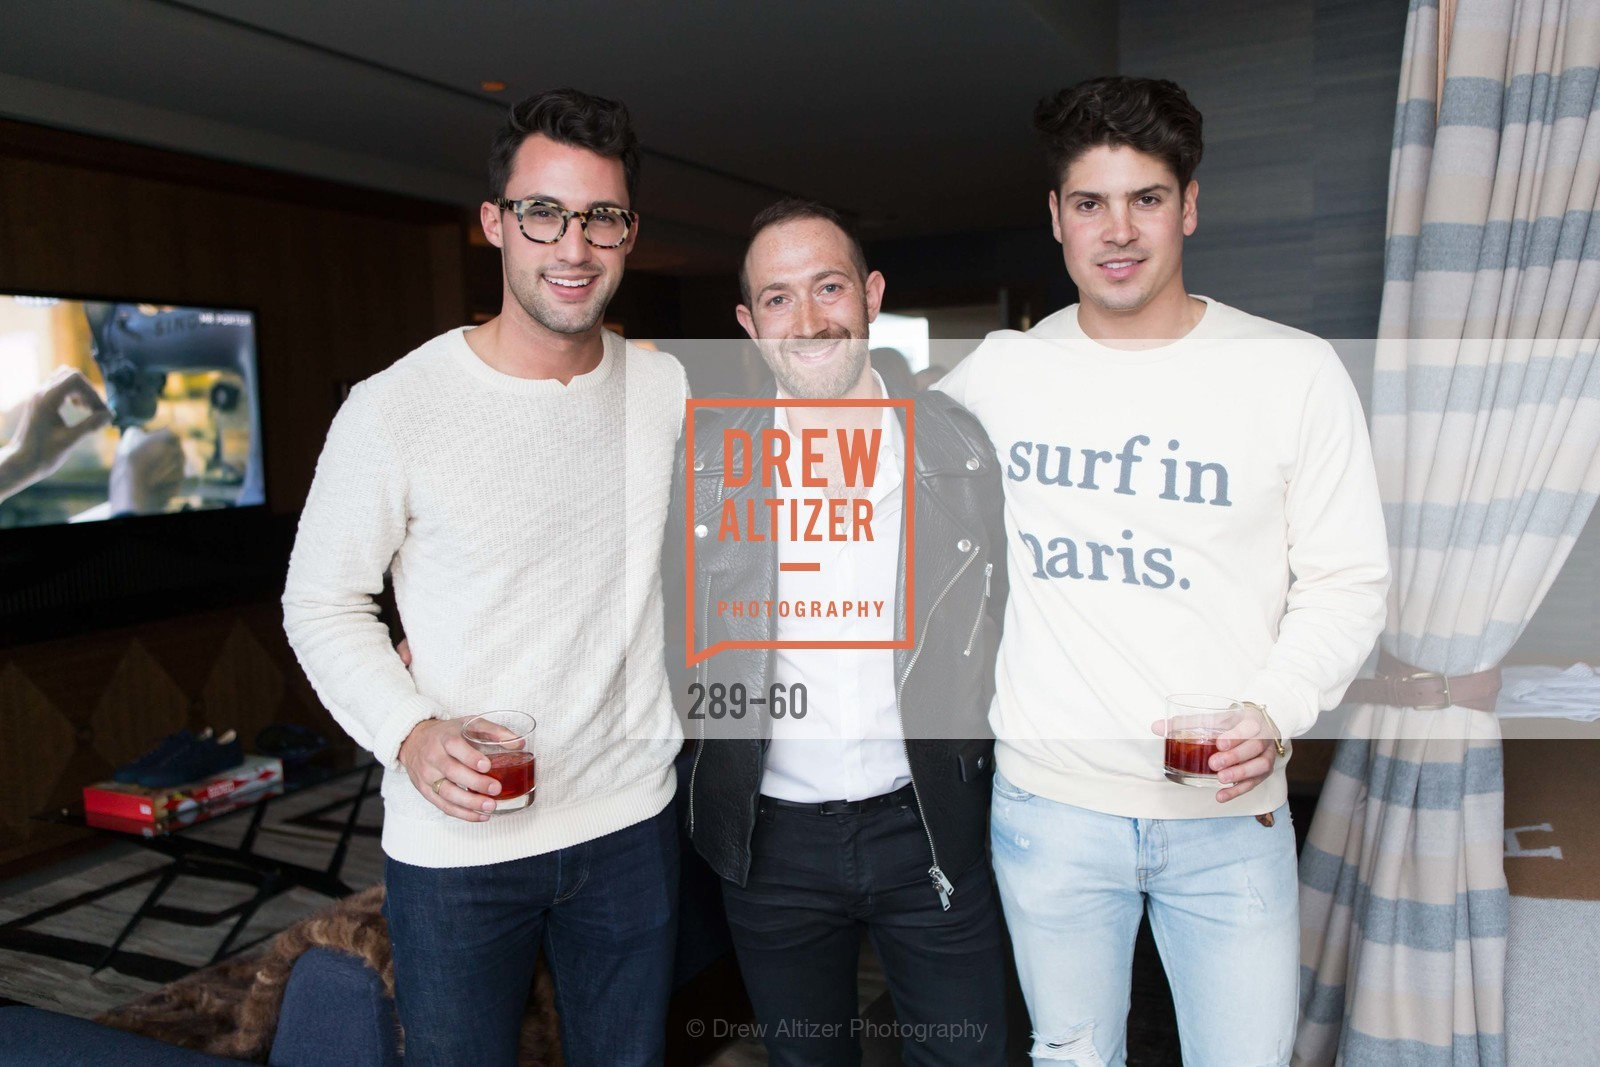 Chris Lynn, Brian Mehr, Brock Williams, MR PORTER Celebrate The San Francisco Issue of The Journal, The Battery Rooftop - The Battery SF, April 23rd, 2015,Drew Altizer, Drew Altizer Photography, full-service agency, private events, San Francisco photographer, photographer california